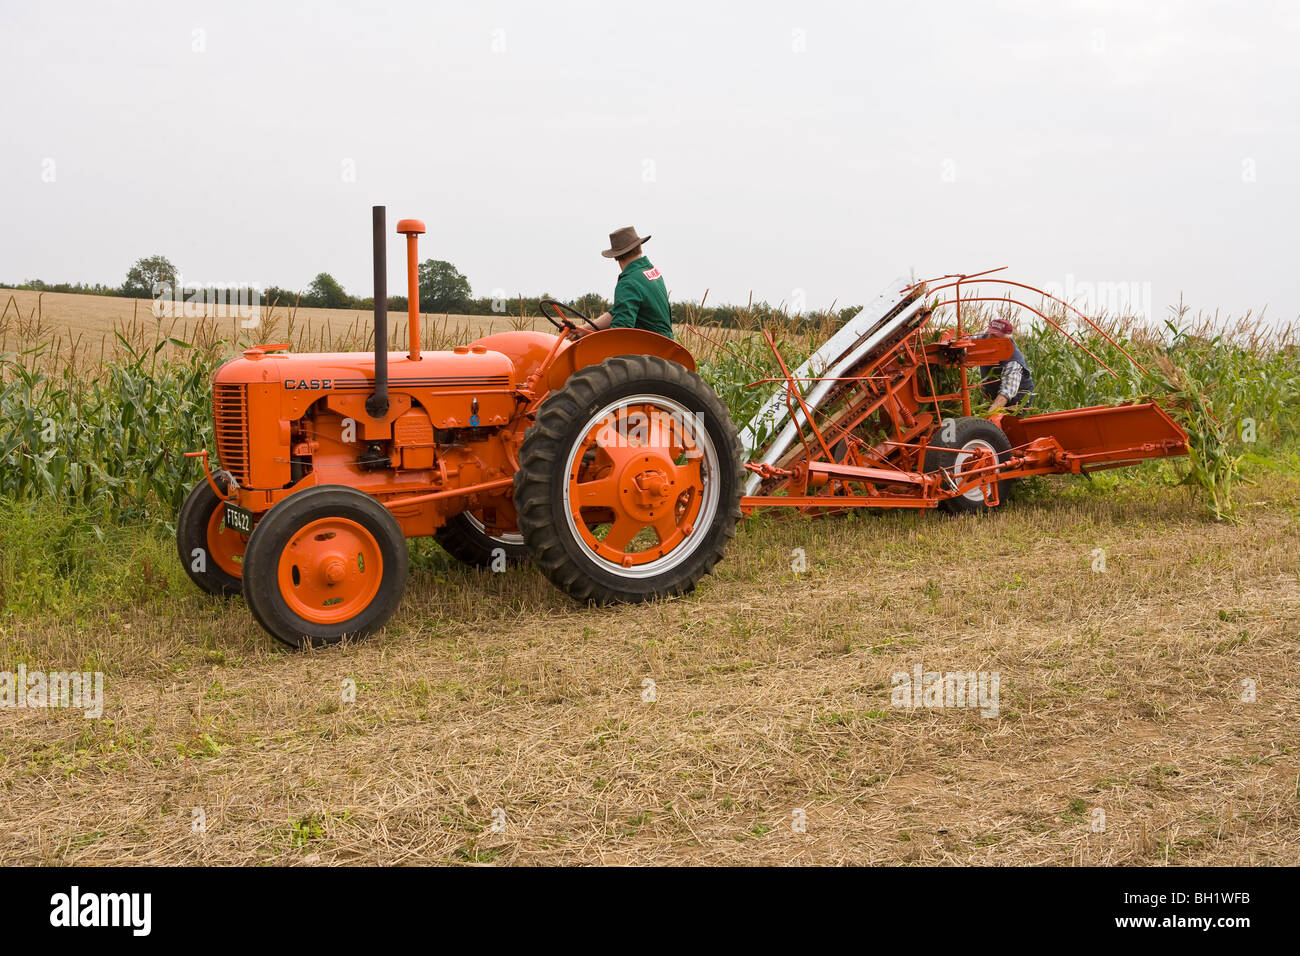 1942 Case Tractor : Case dc with corn binder stock photo royalty